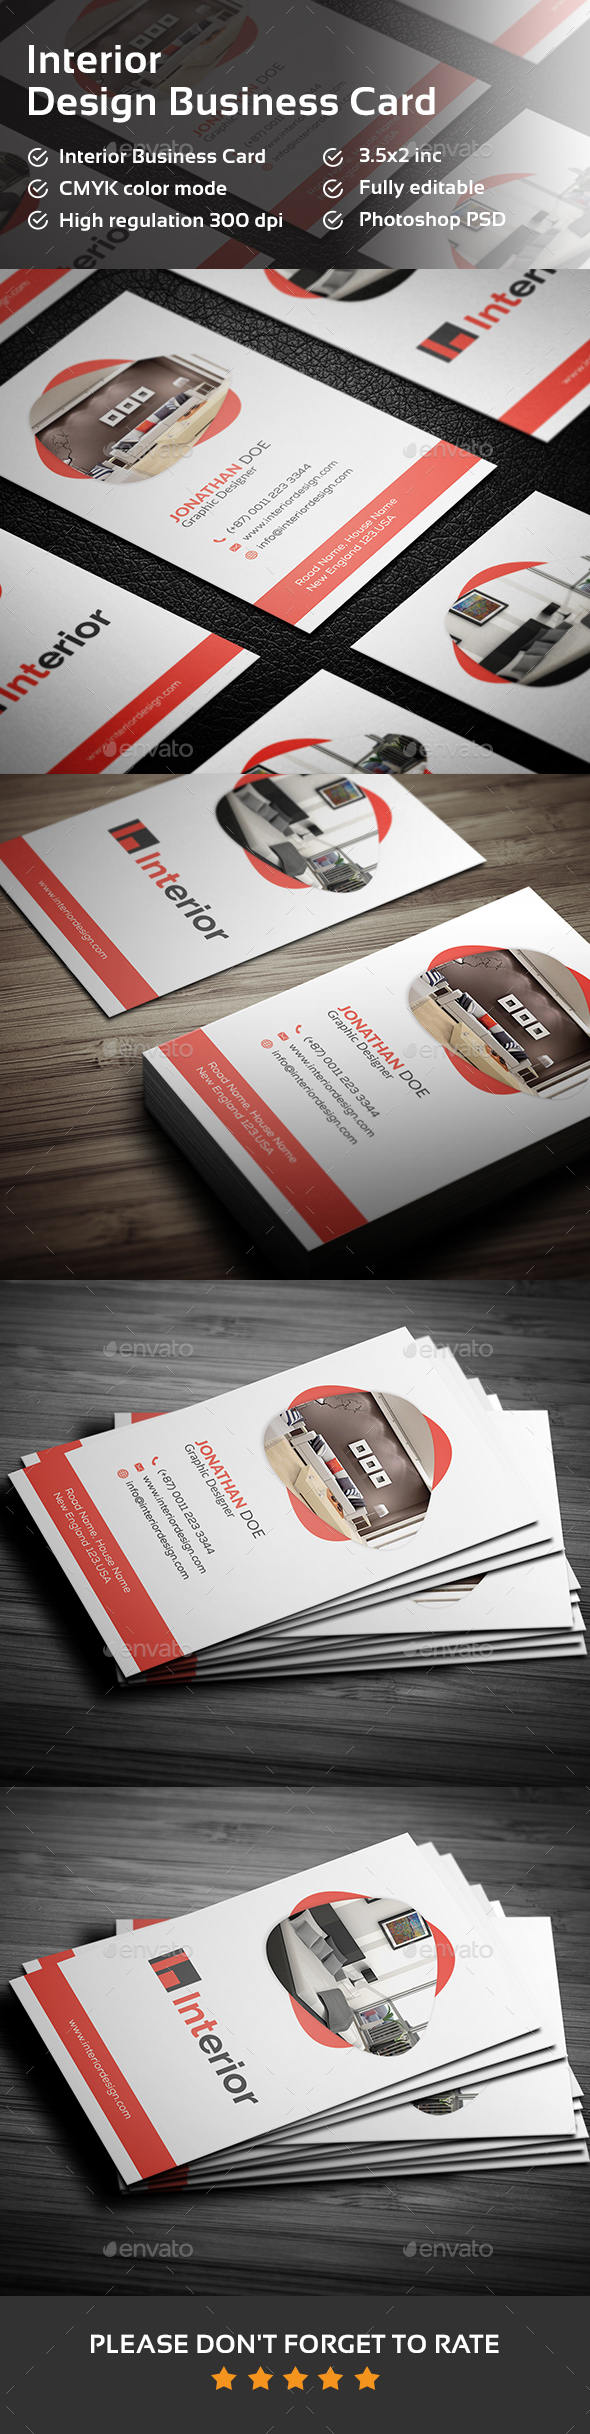 Interior Design Business Card - Creative Business Cards